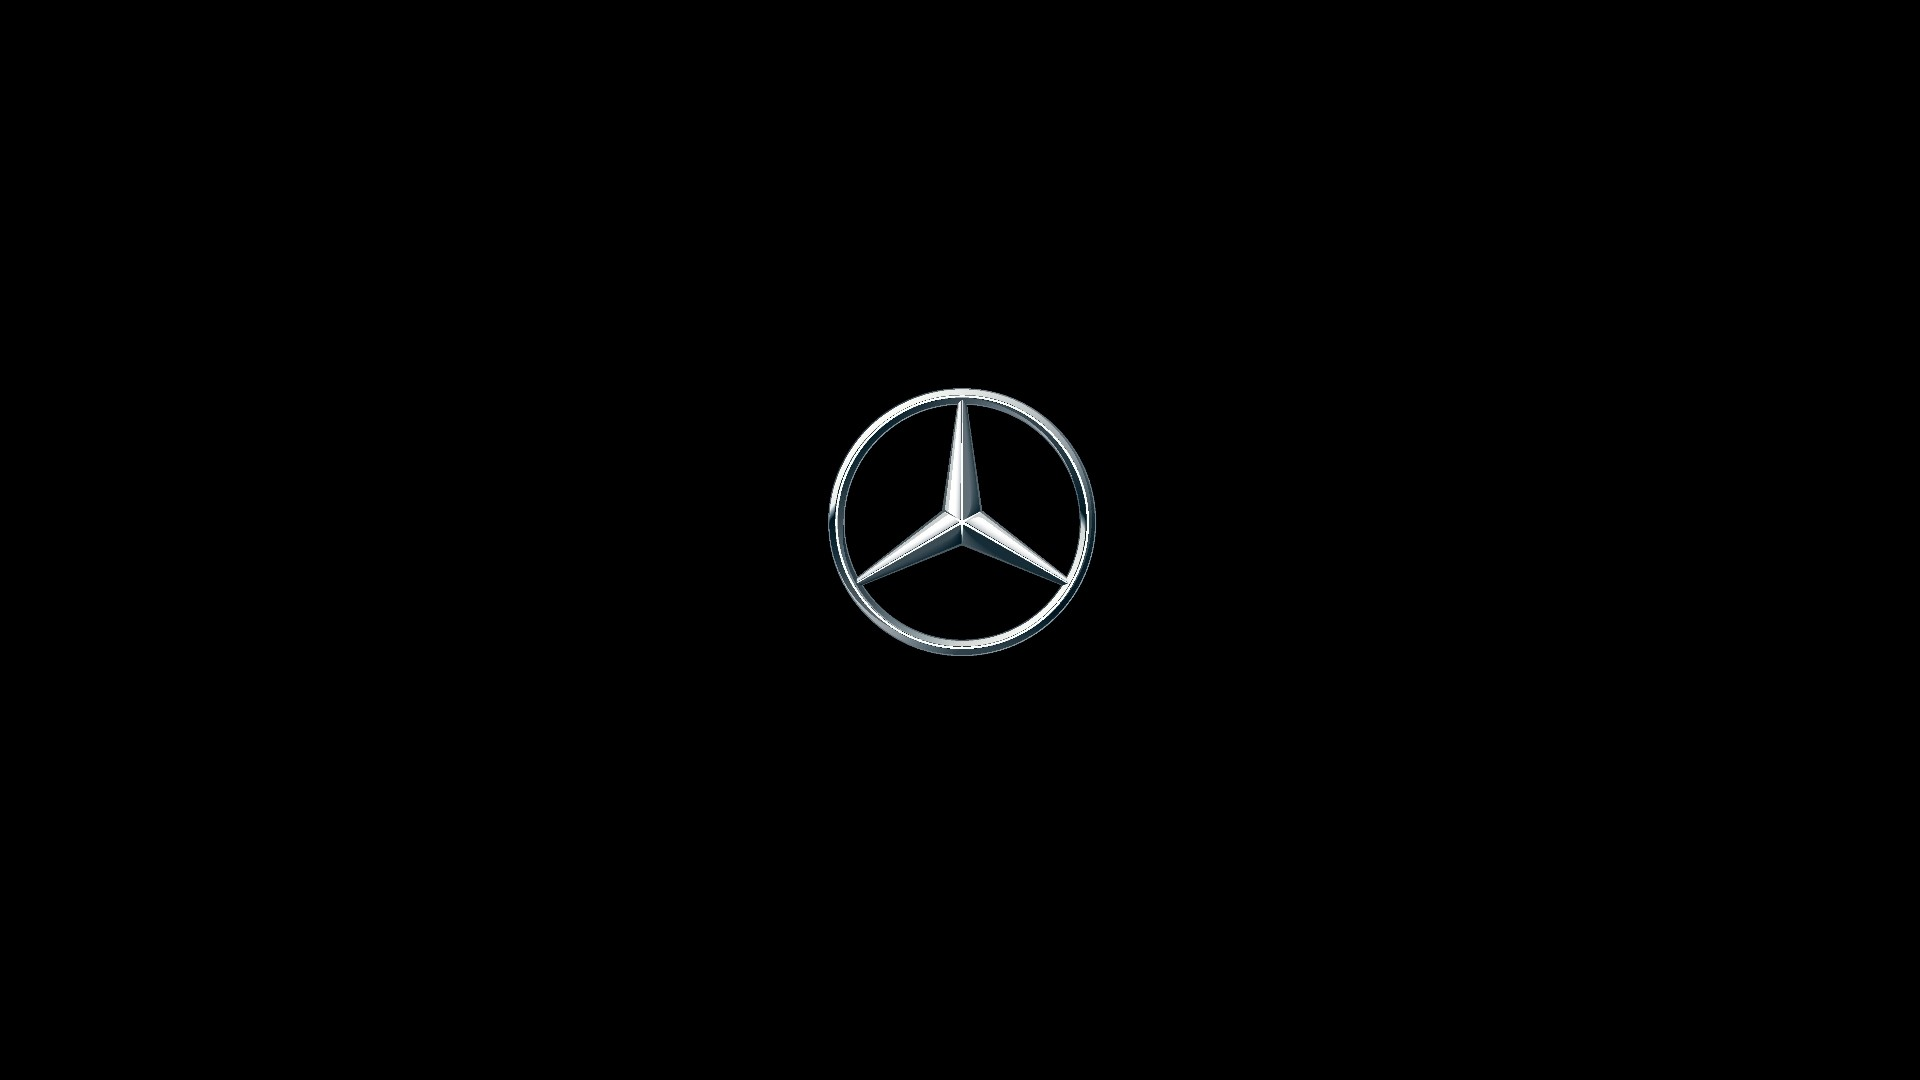 benz logo wallpapers wallpaper - photo #12